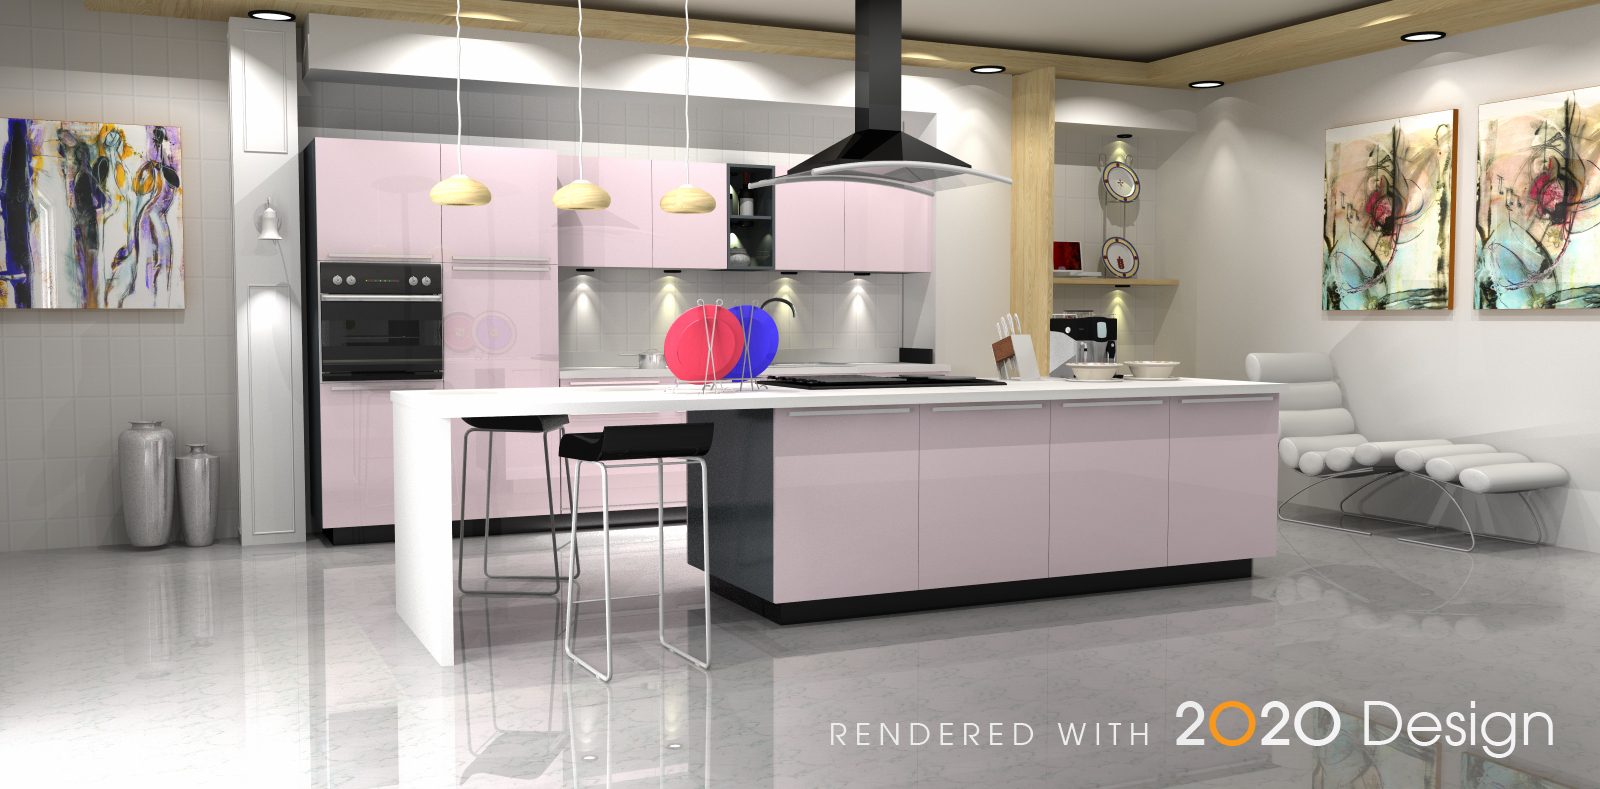 2020 Announces Cloud based Delivery of Kitchen Design Software